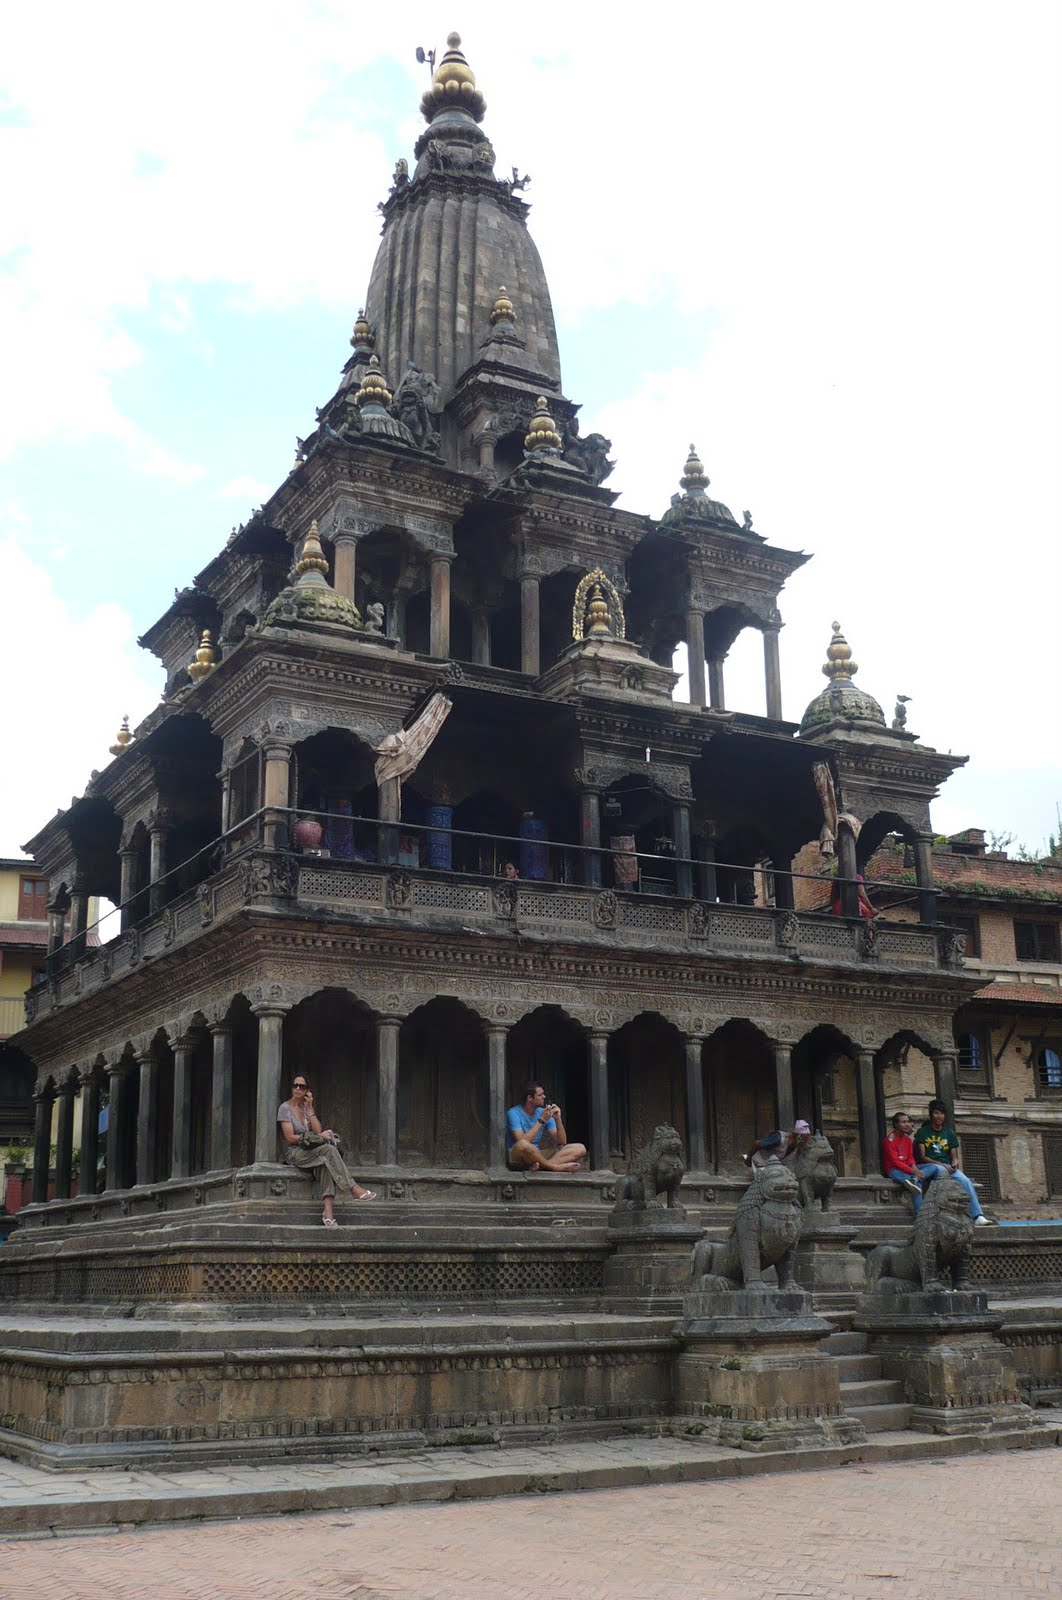 Pauline marks travels temples architecture cultural